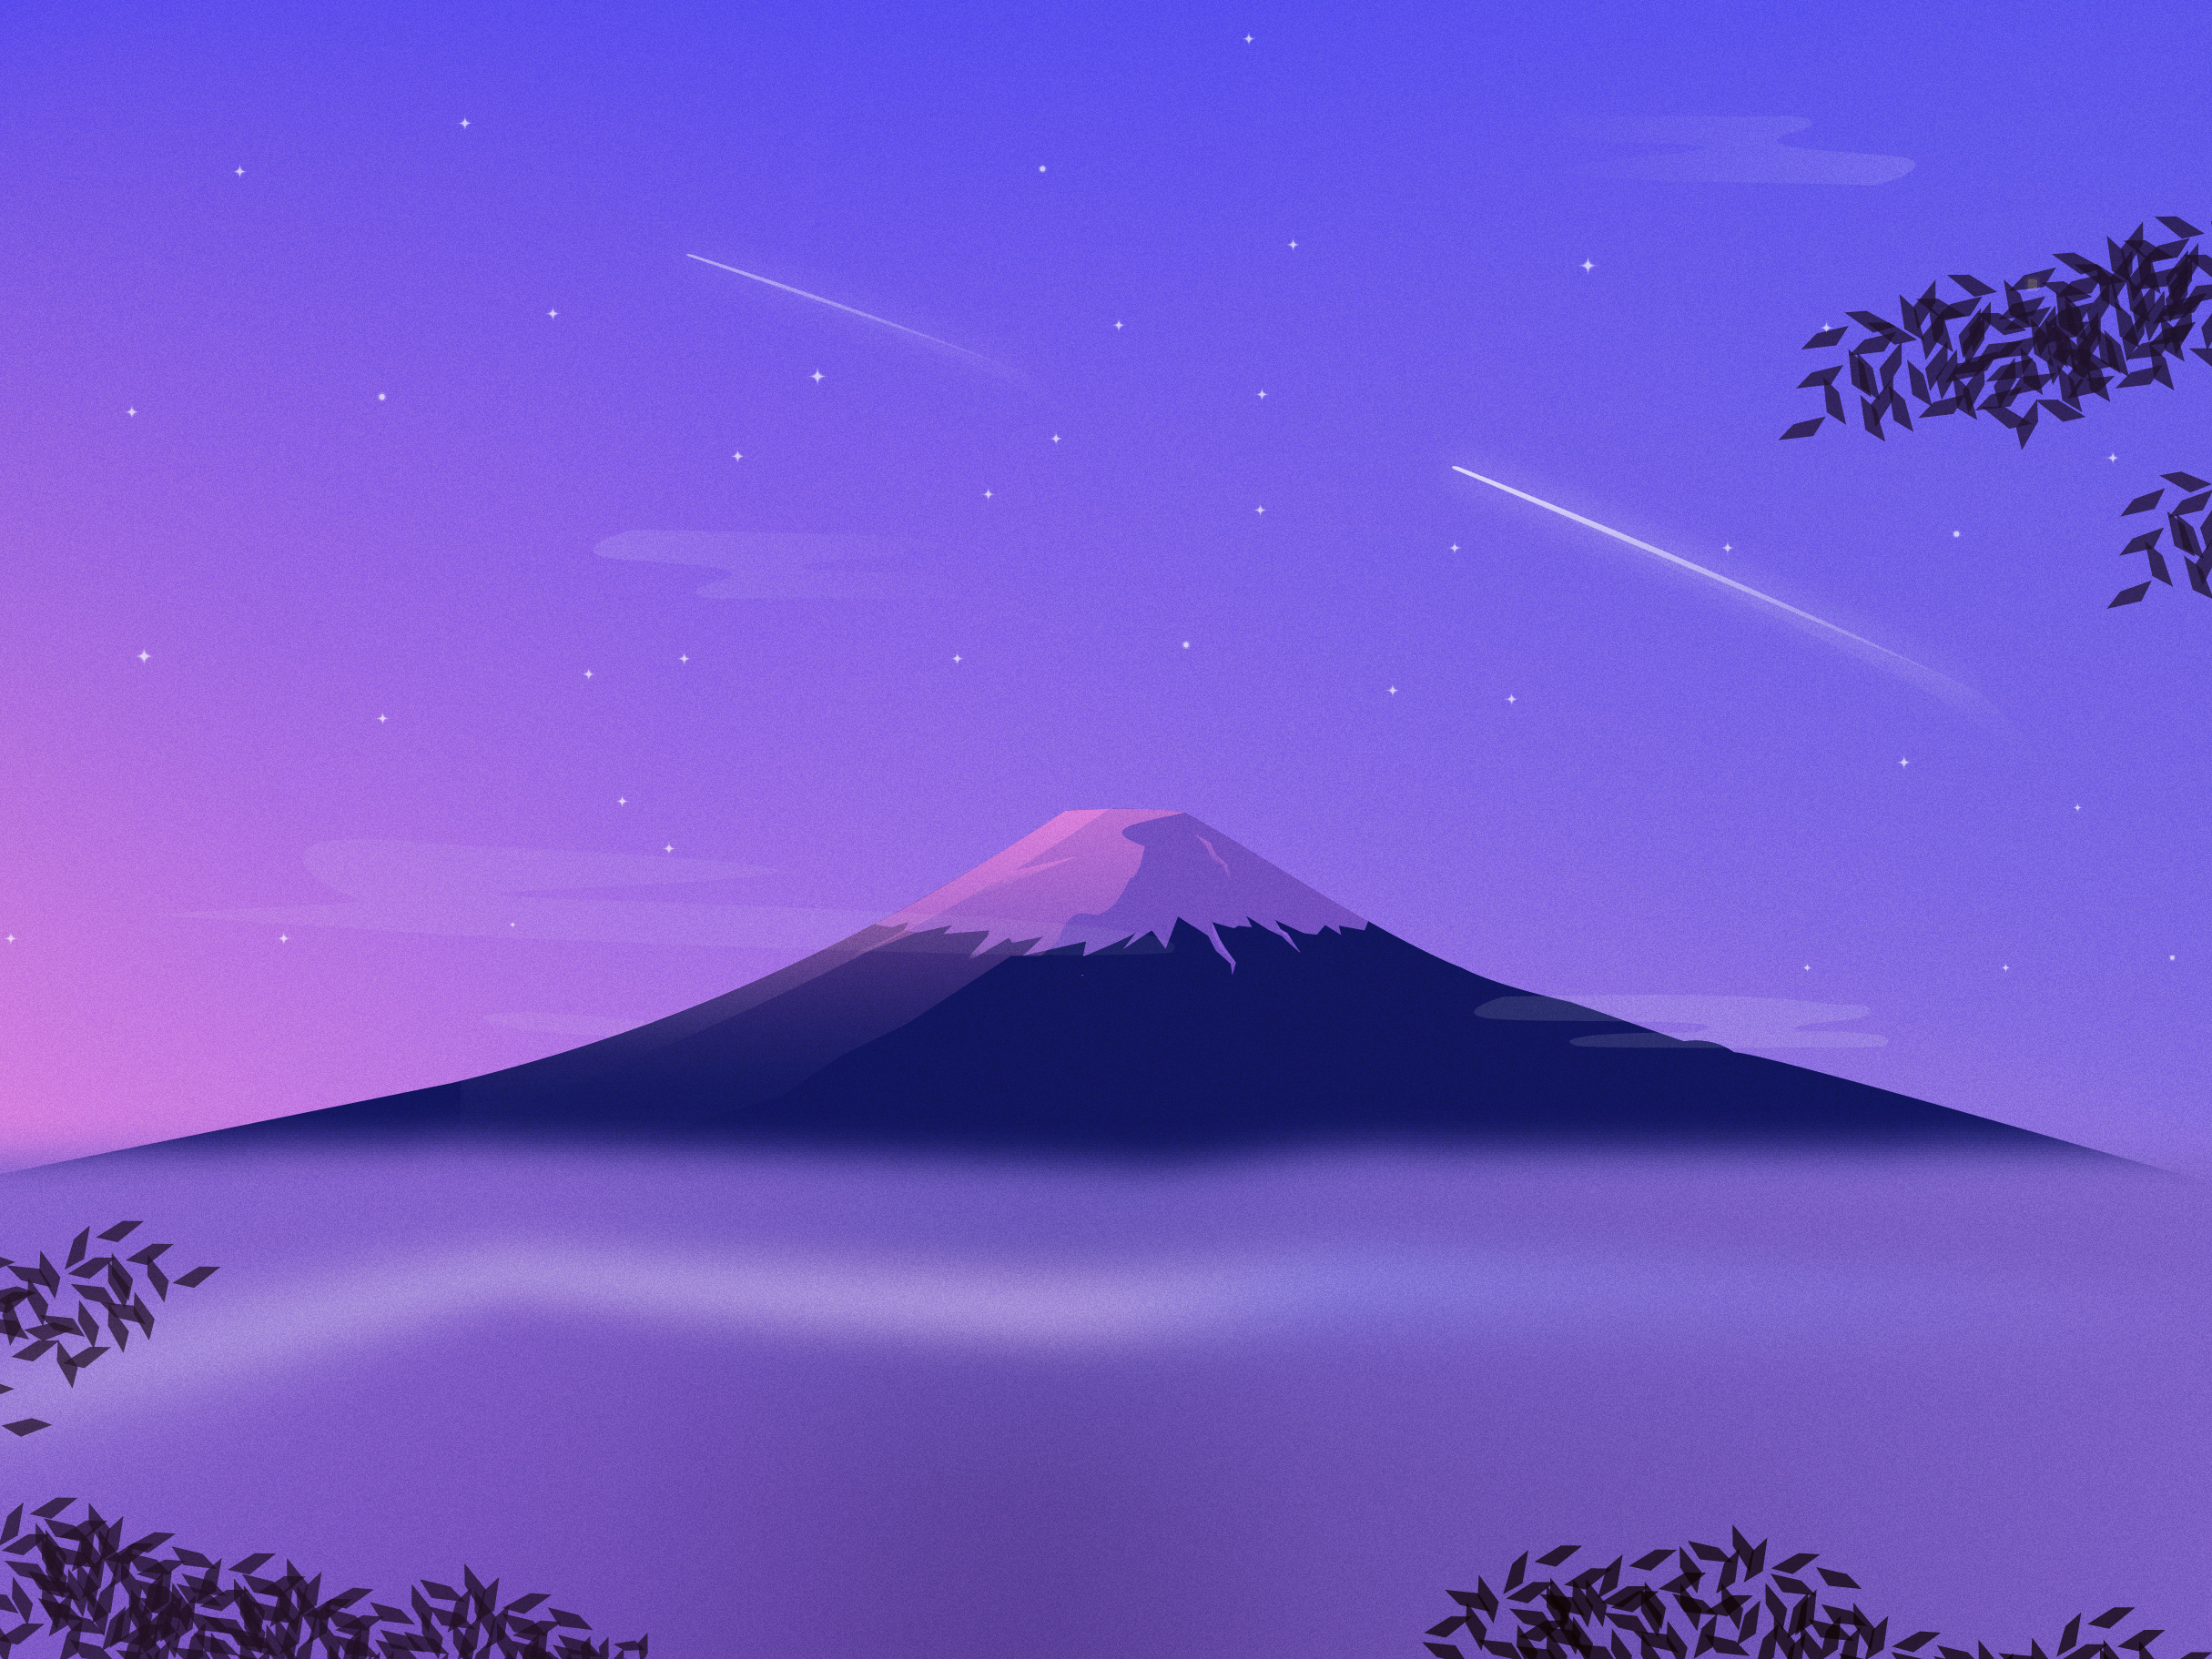 Mount Fuji Minimal Hd Artist 4k Wallpapers Images